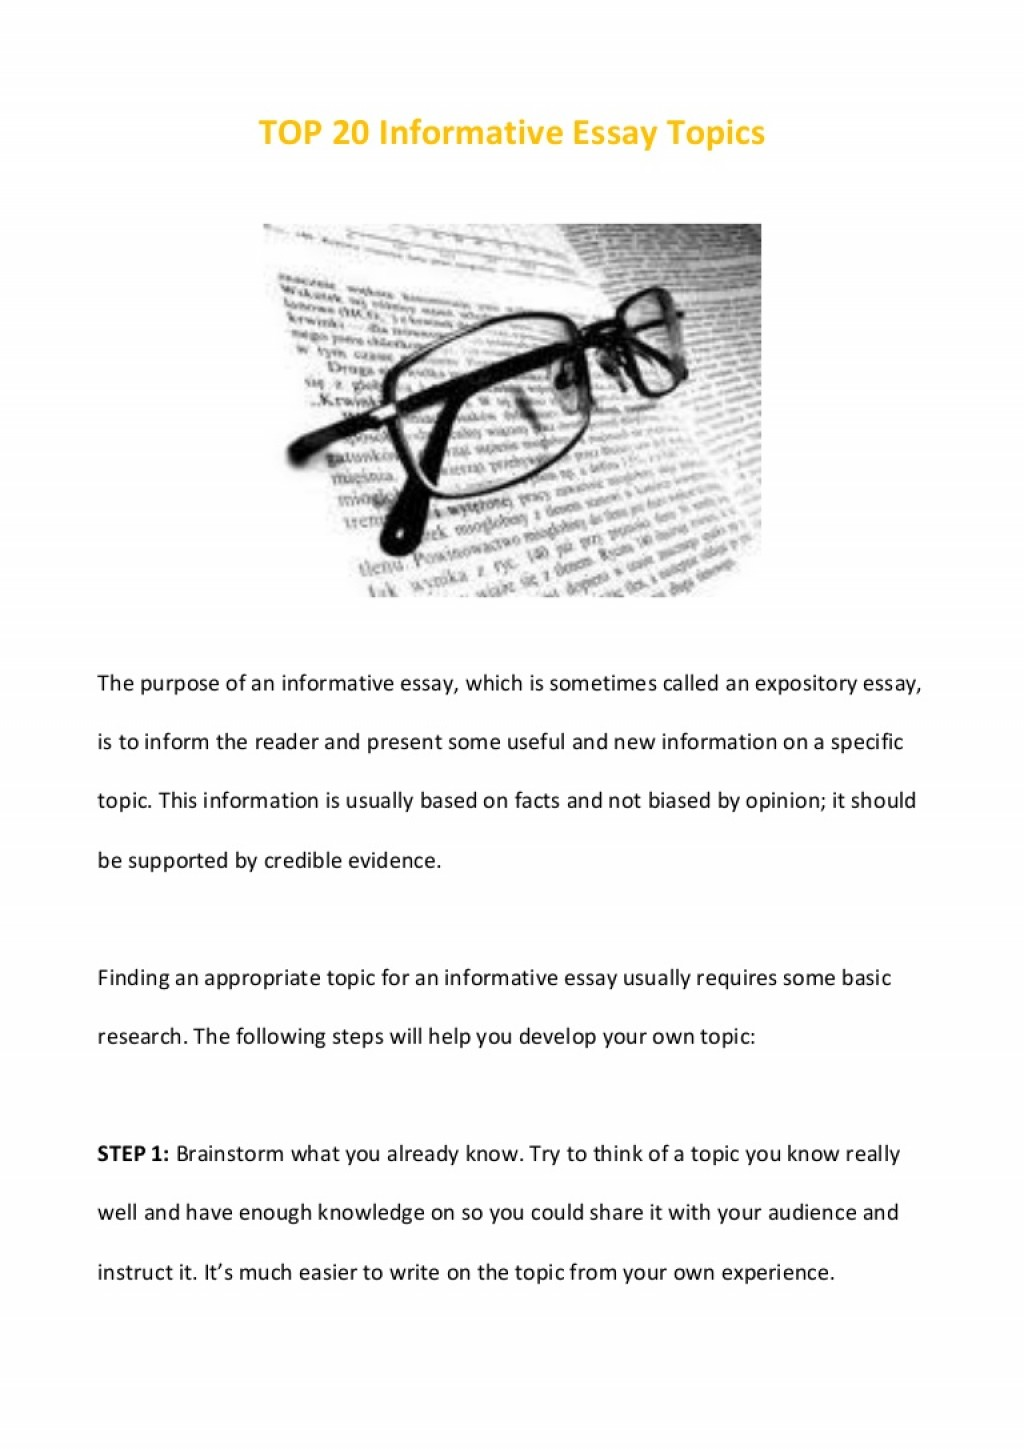 012 Good Informative Essay Topics Interesting Descriptive Topic Ideas For College Top20informativeessaytopics Phpapp02 Thumbn Research Paper Persuasive Students Imposing Great Large